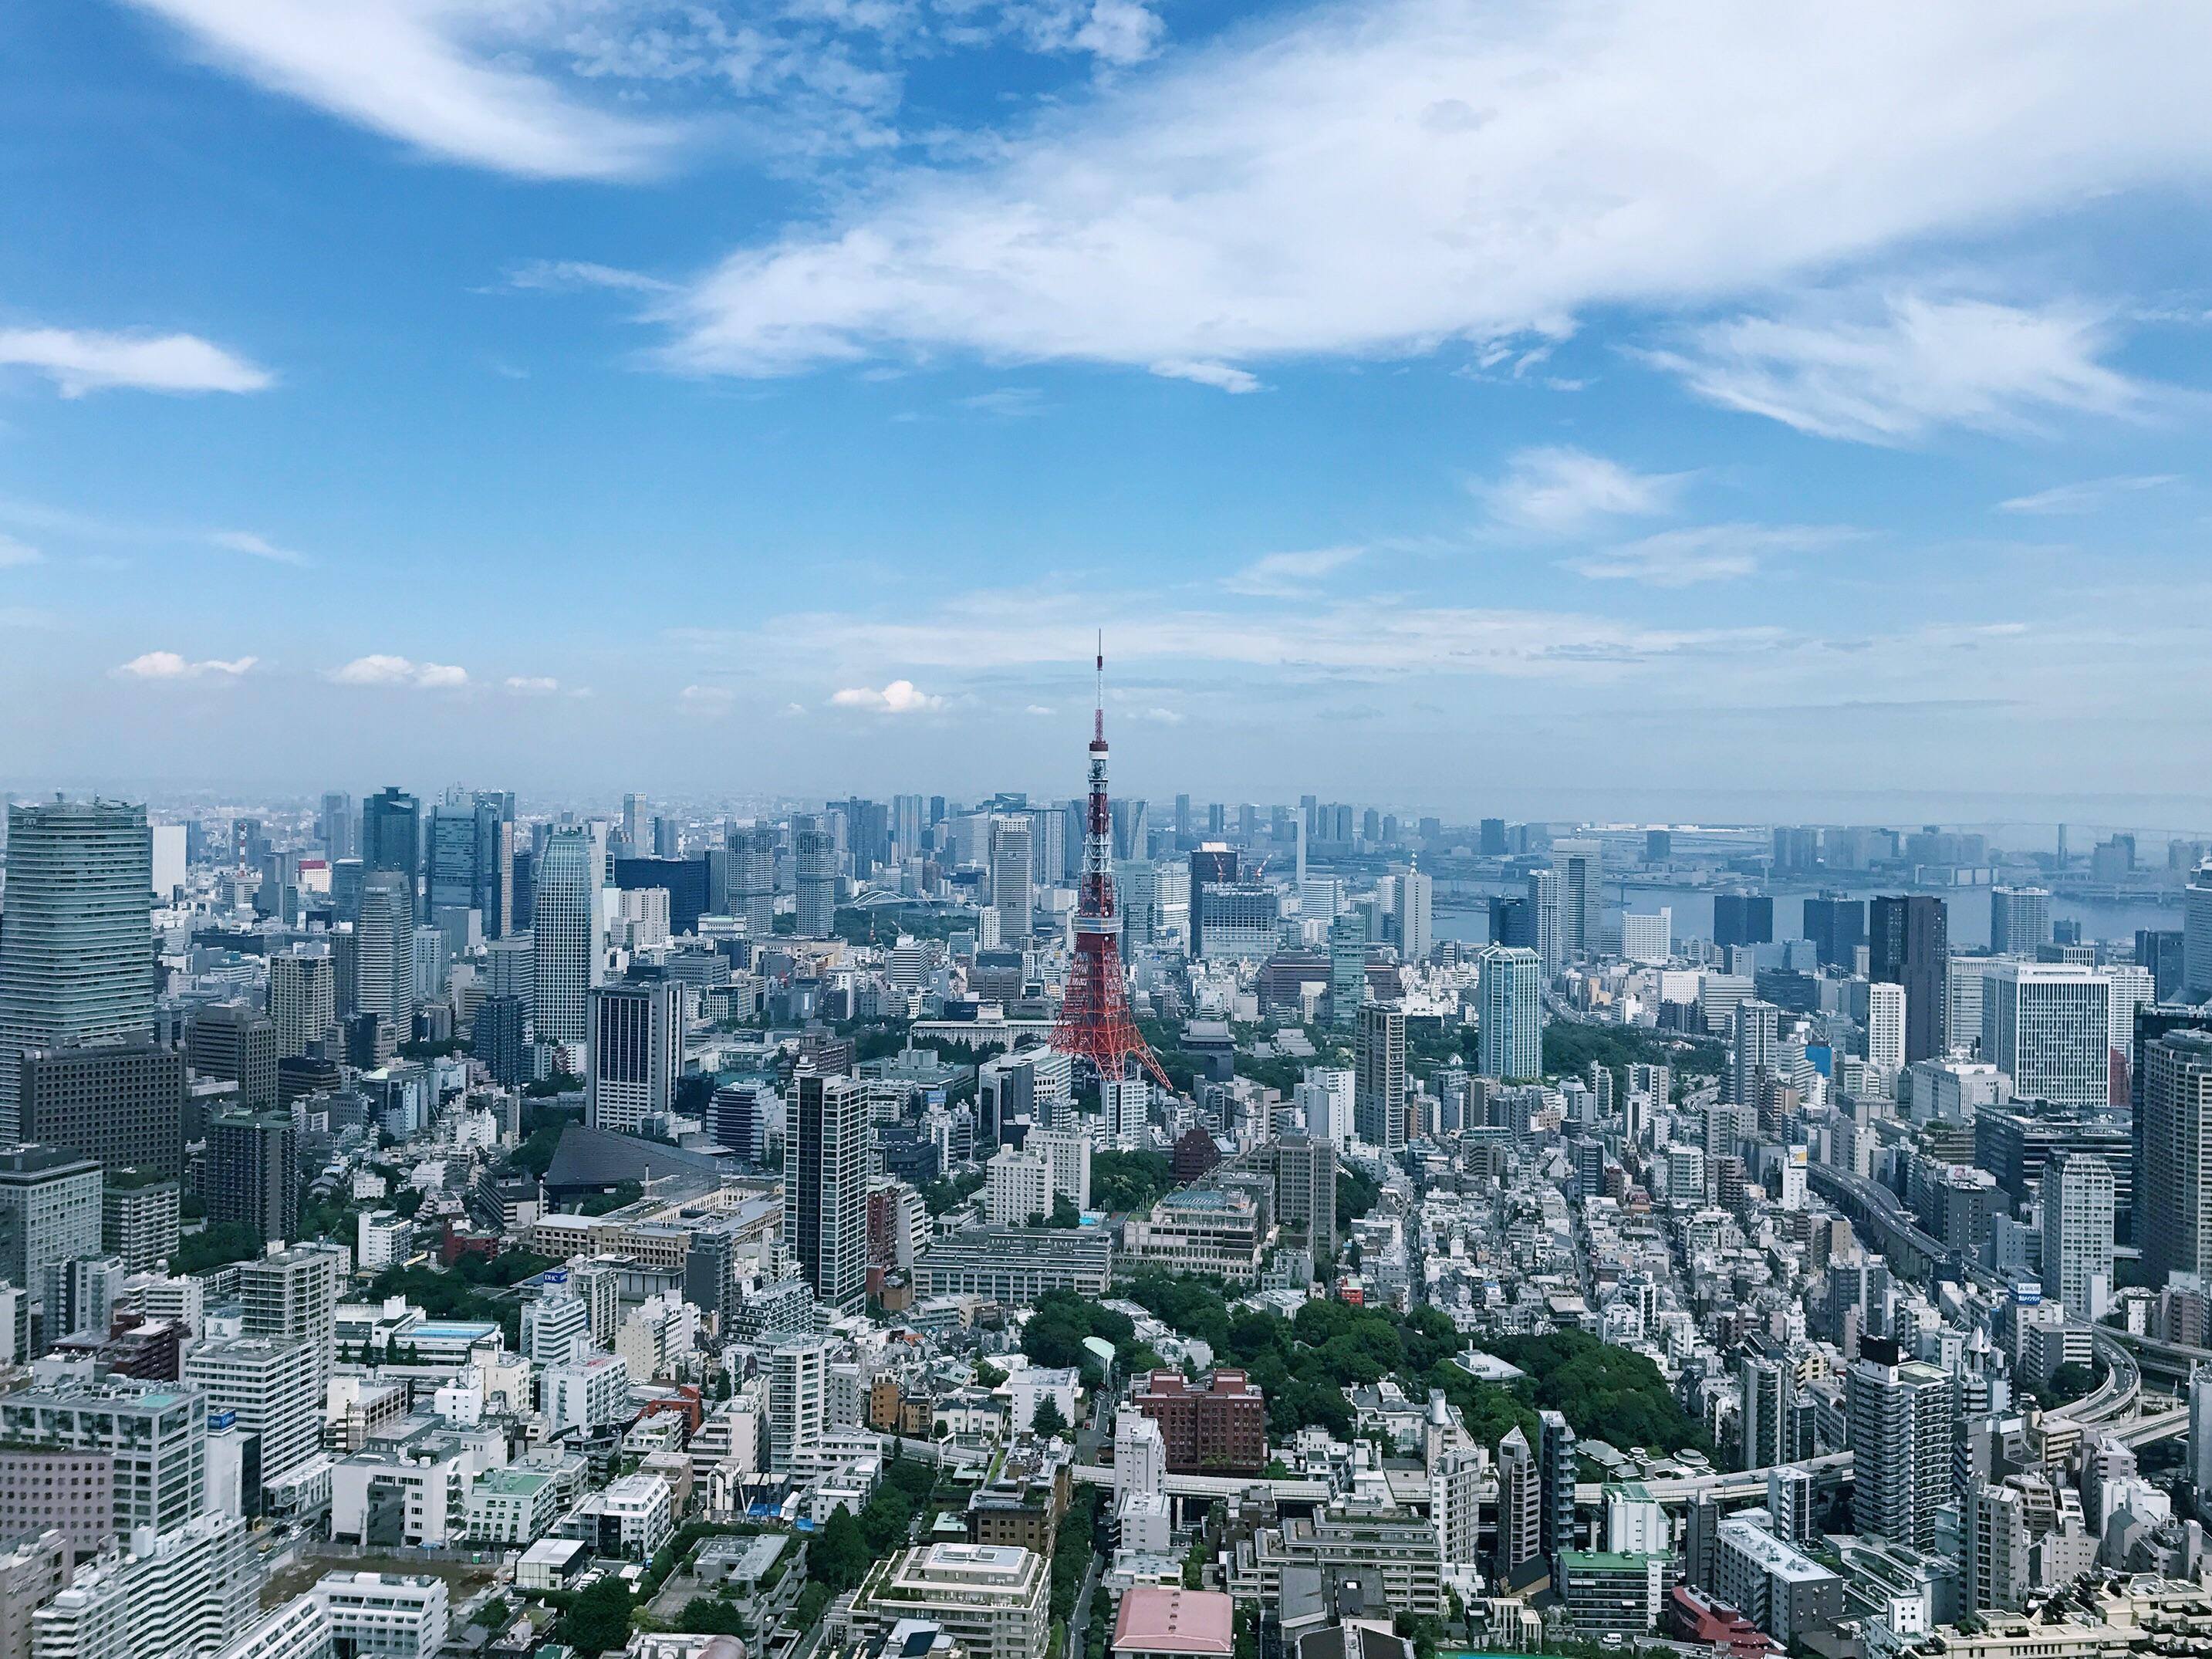 tokyo skyline from the